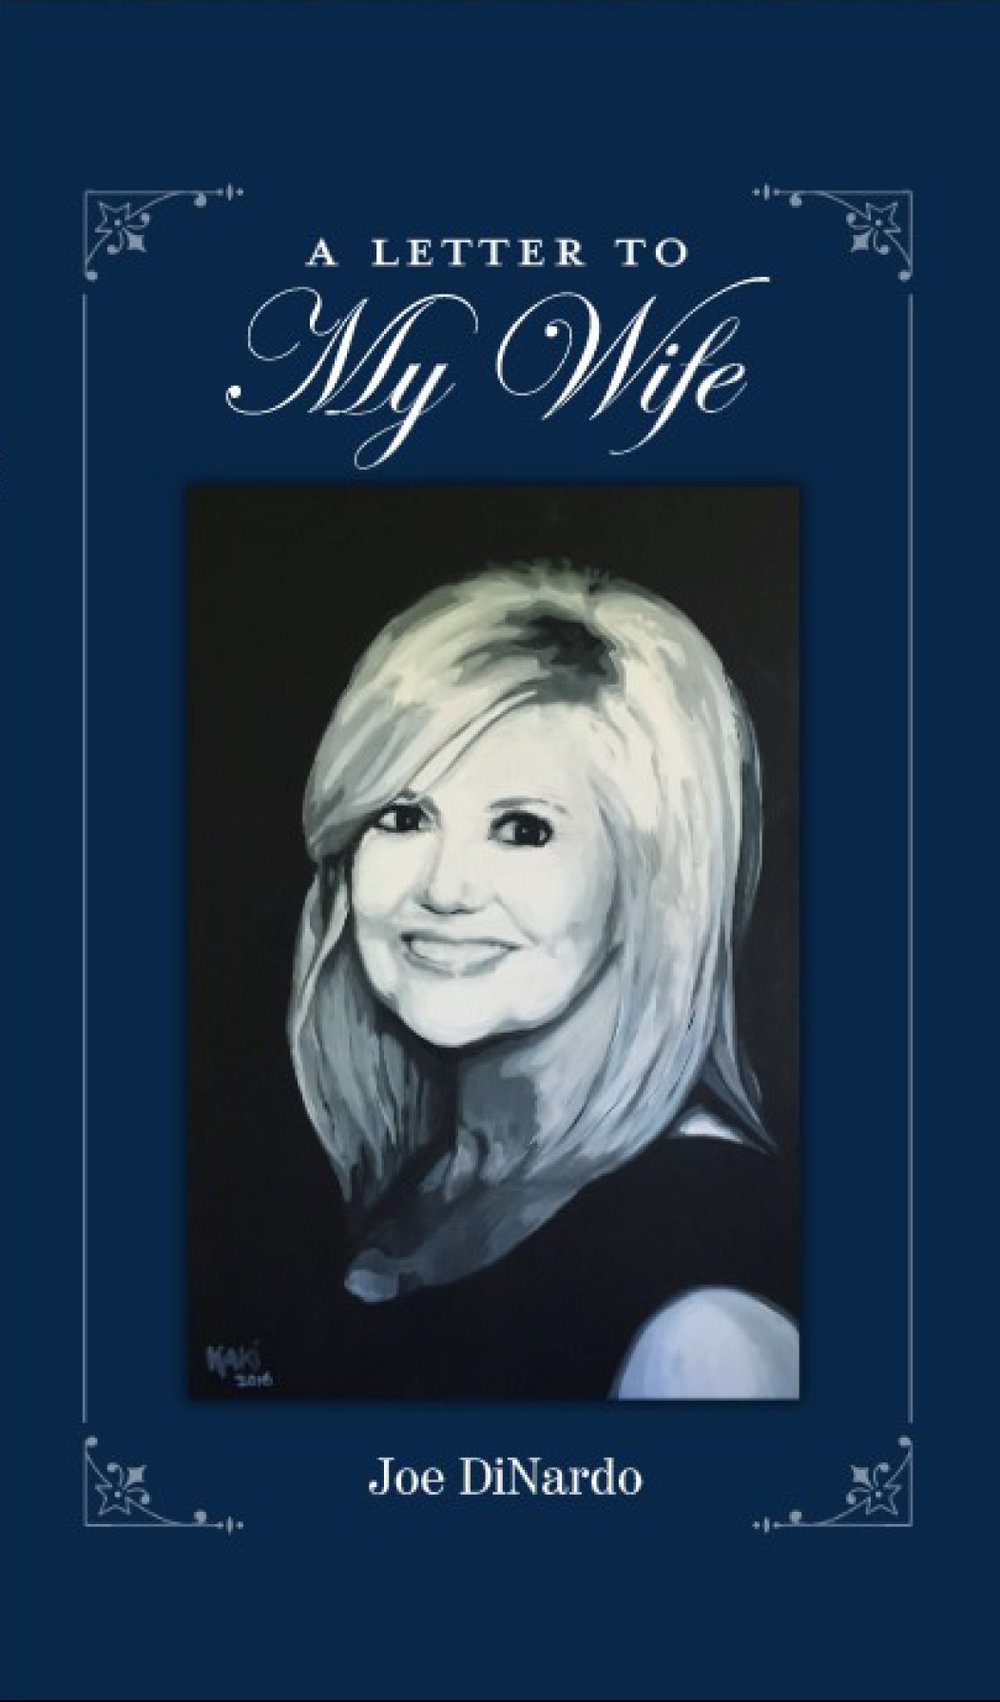 A Letter to My Wife_KDP cover.jpg